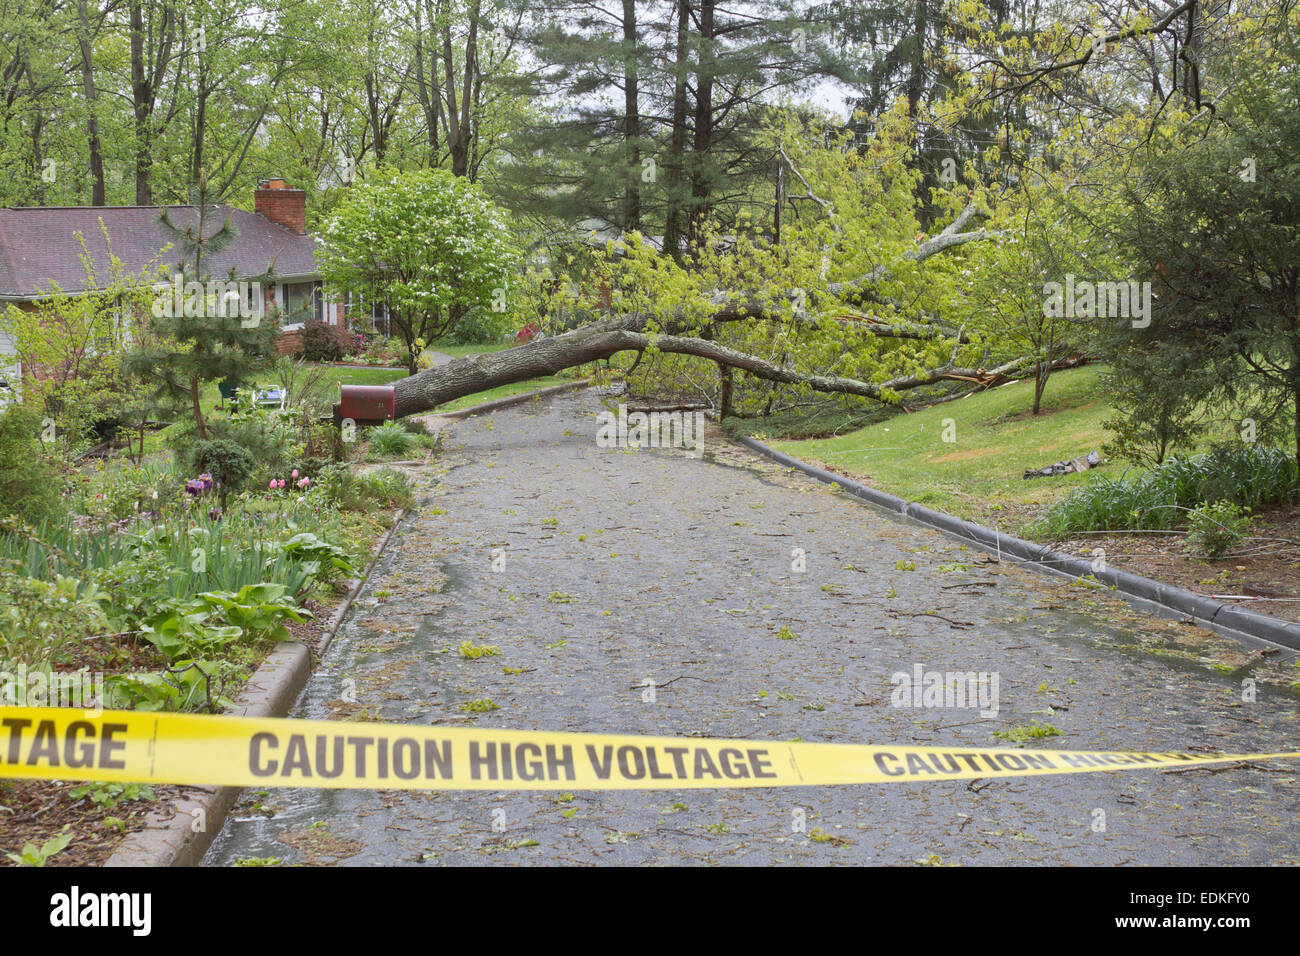 A neighborhood road is blocked by a large oak tree and downed power lines after a spring storm - Stock Image